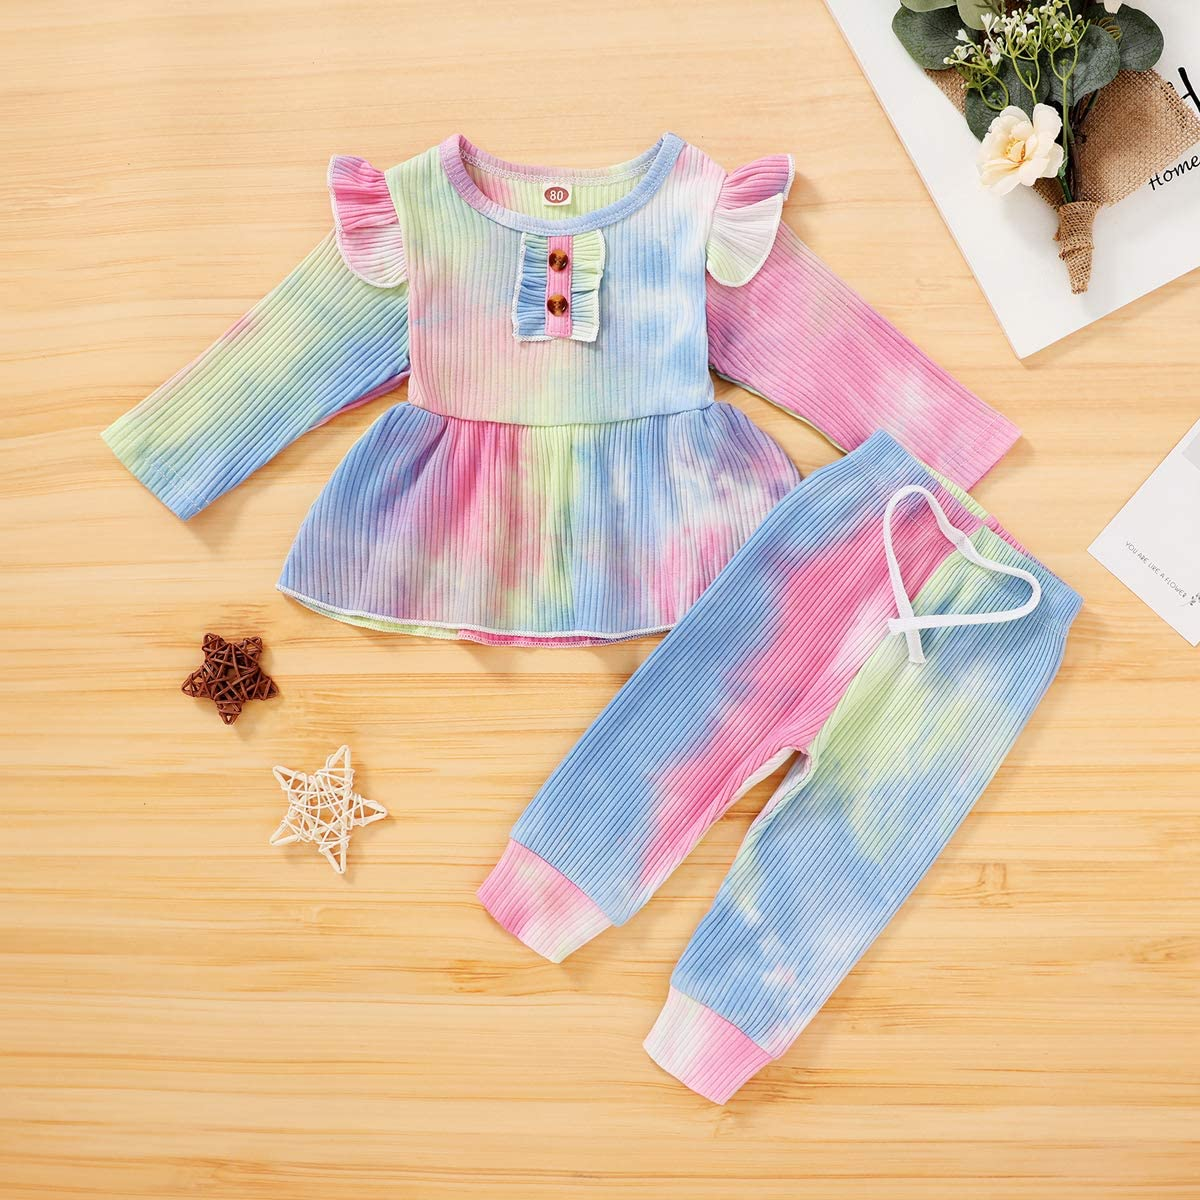 Toddler Baby Girl Clothes Fall Outfits Infant Tie Dye Ruffle Sleeve Tops Long Pants Cute Baby Girl Outfits Set